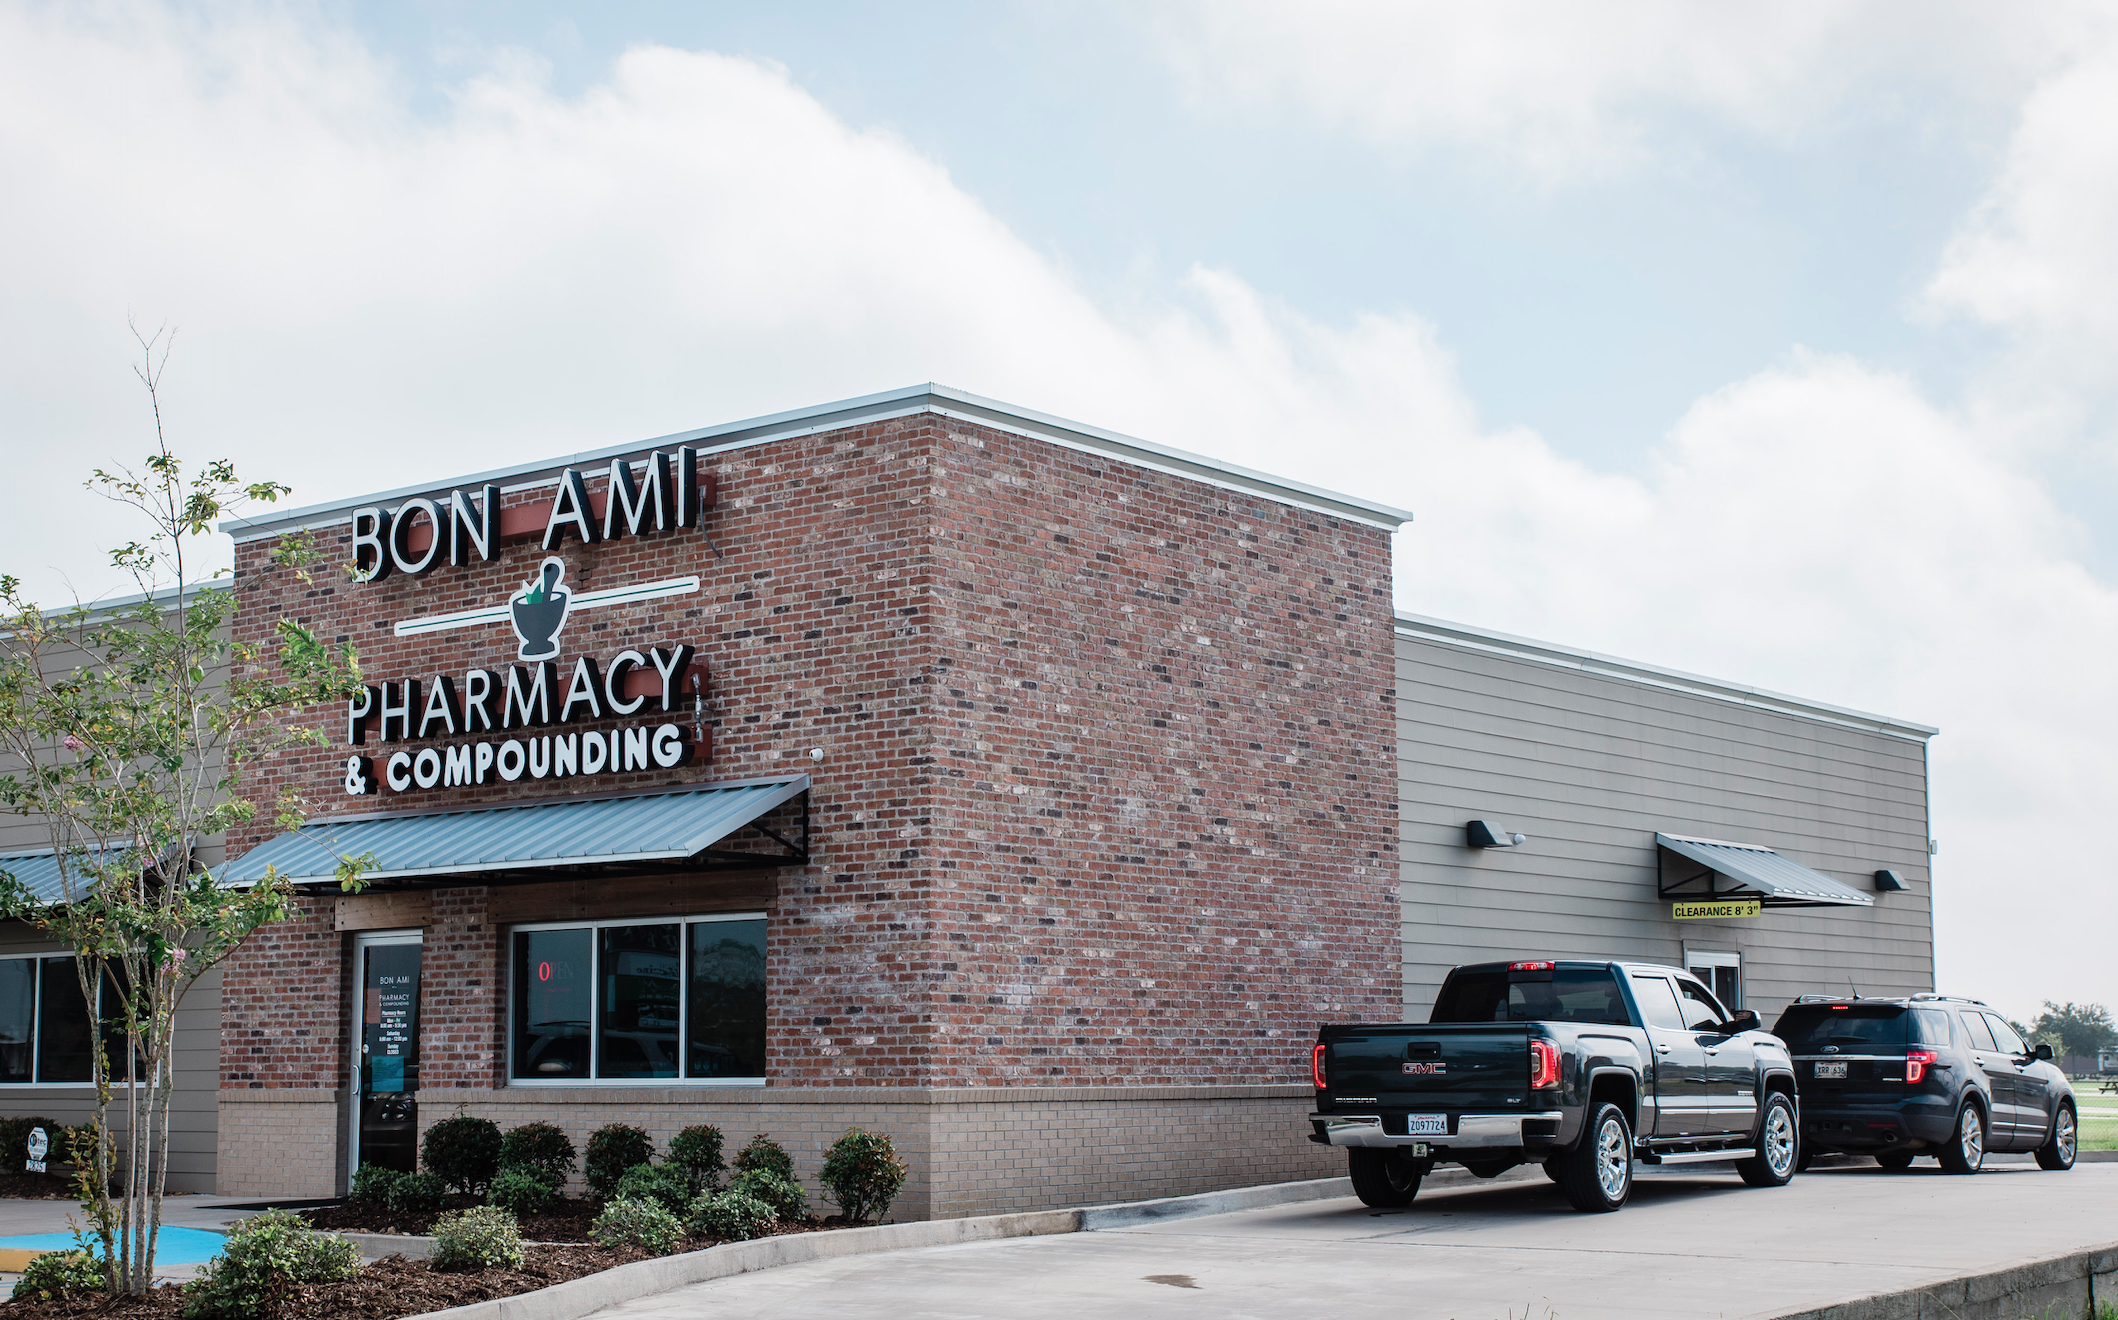 Welcome To Bon Ami Pharmacy & Compounding